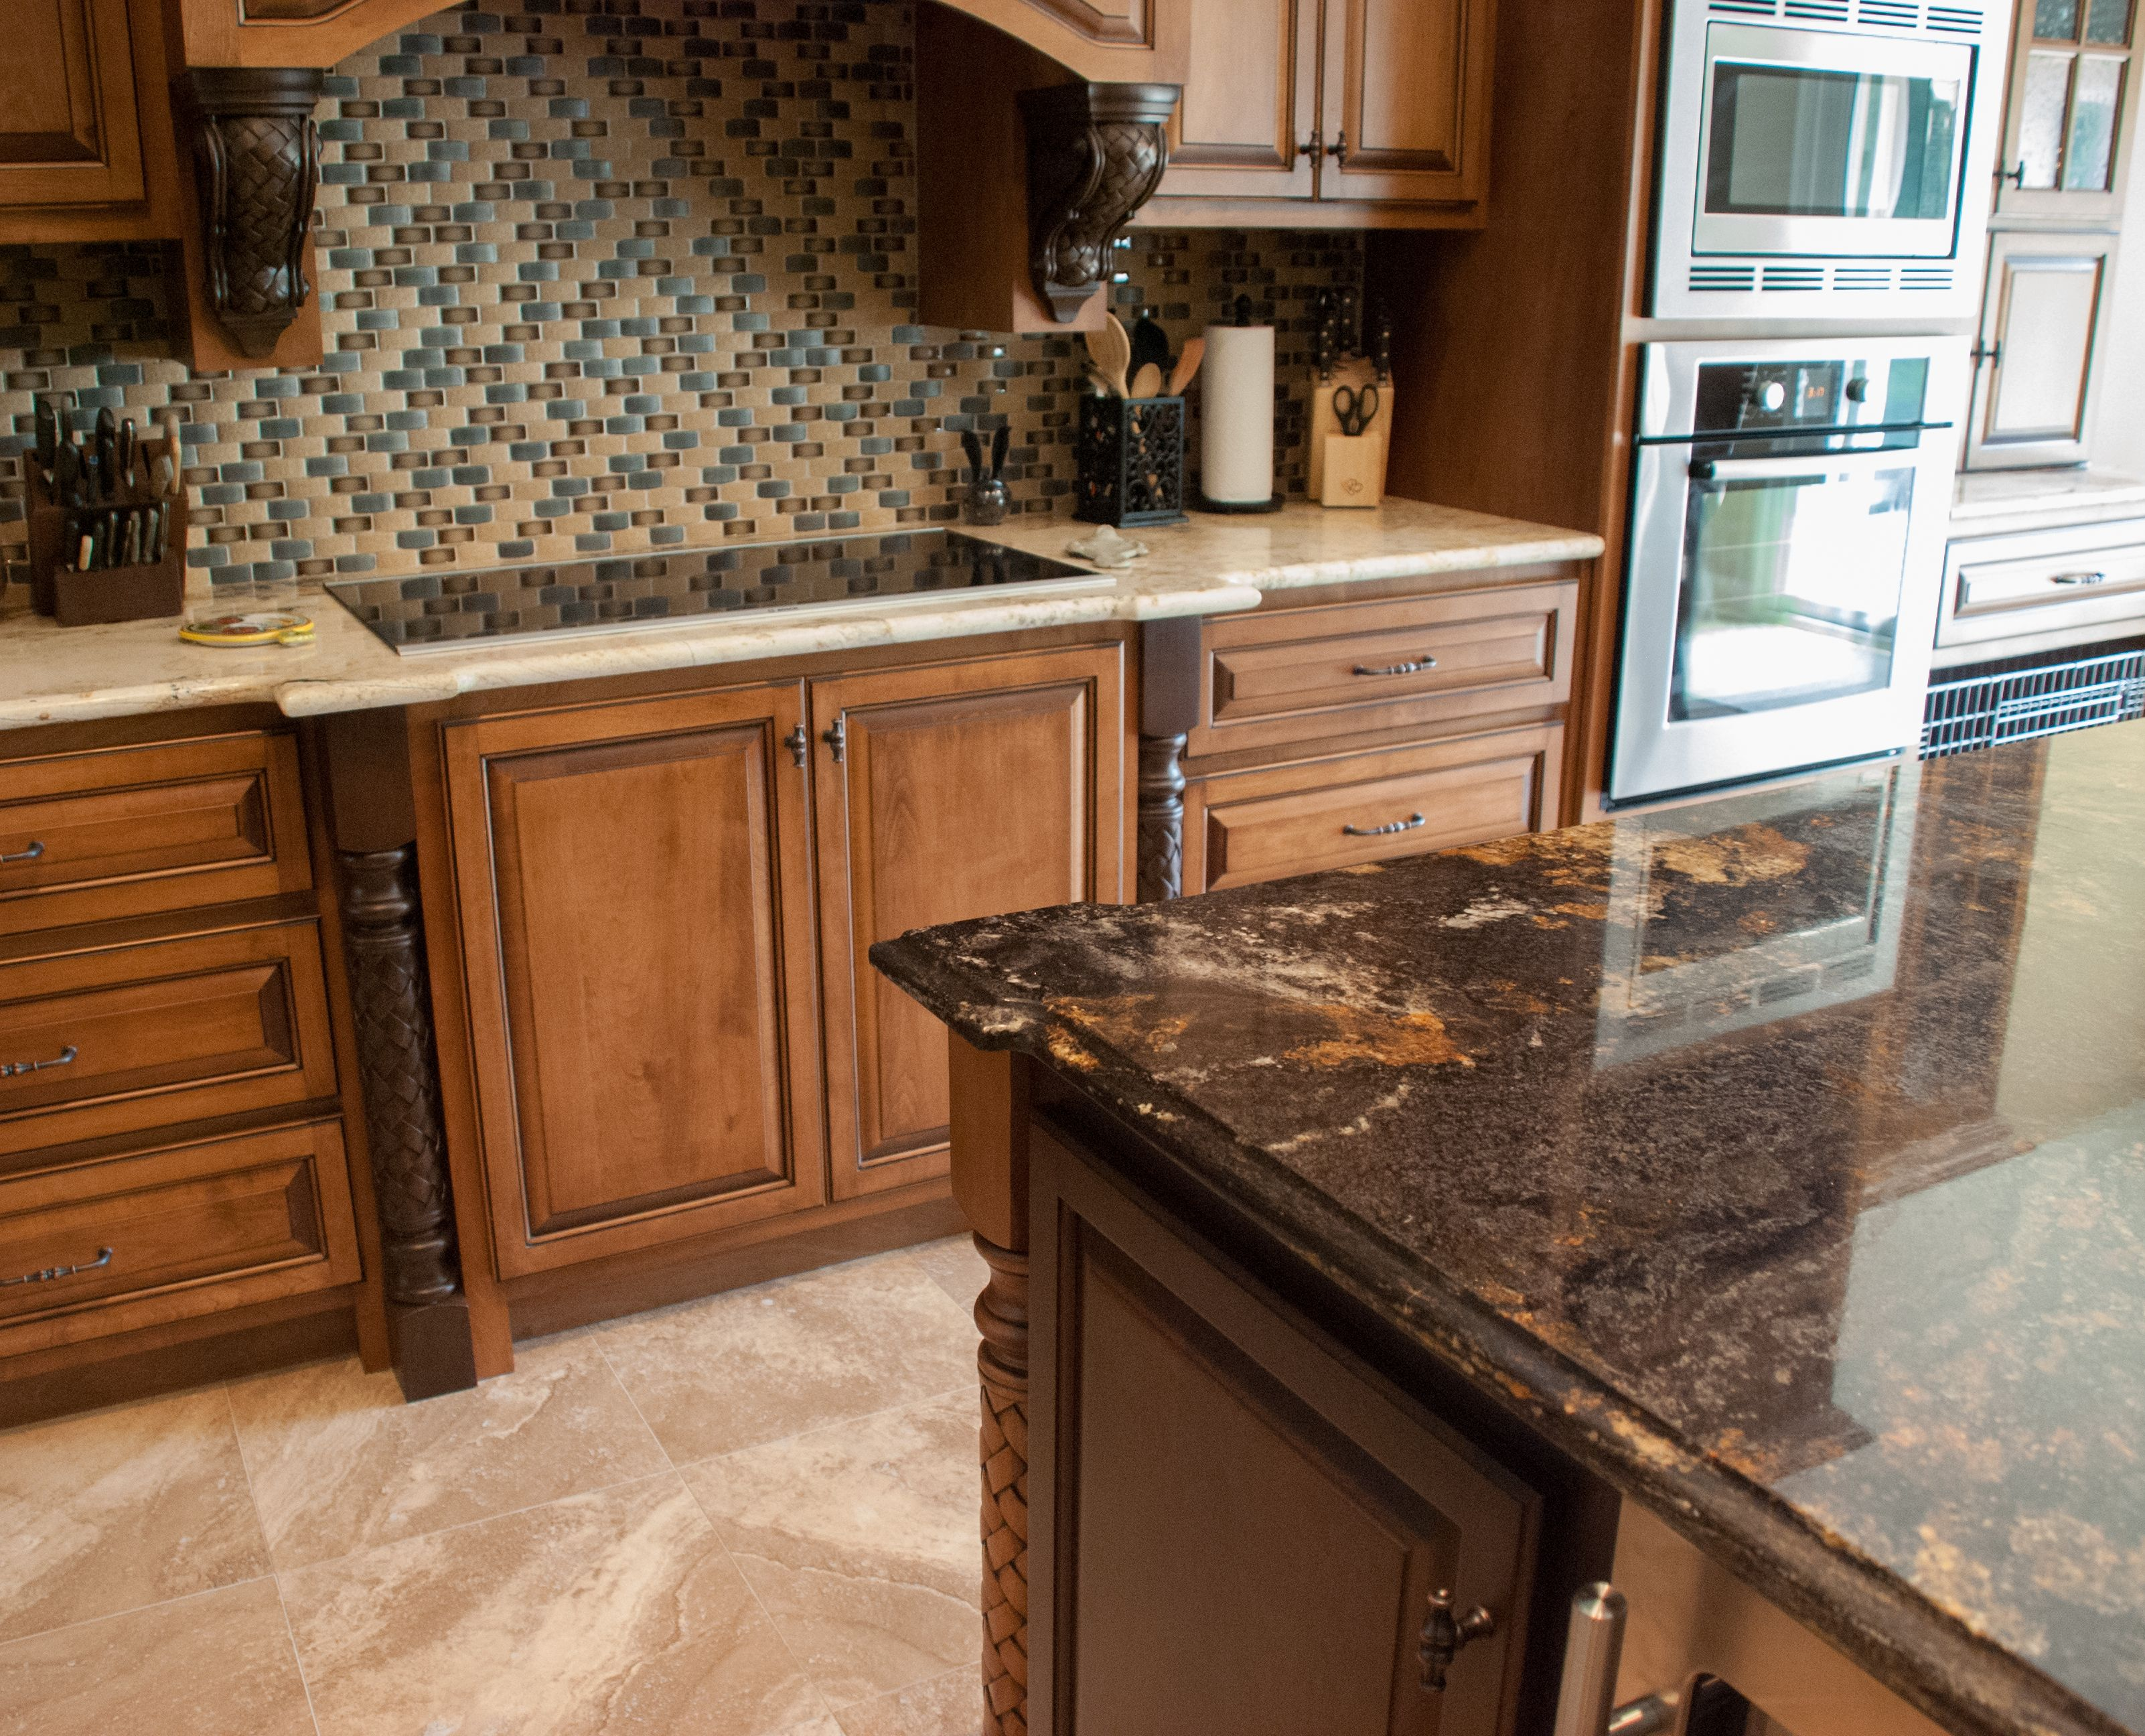 granite kitchen counters commercial appliances contrasting island and main countertops